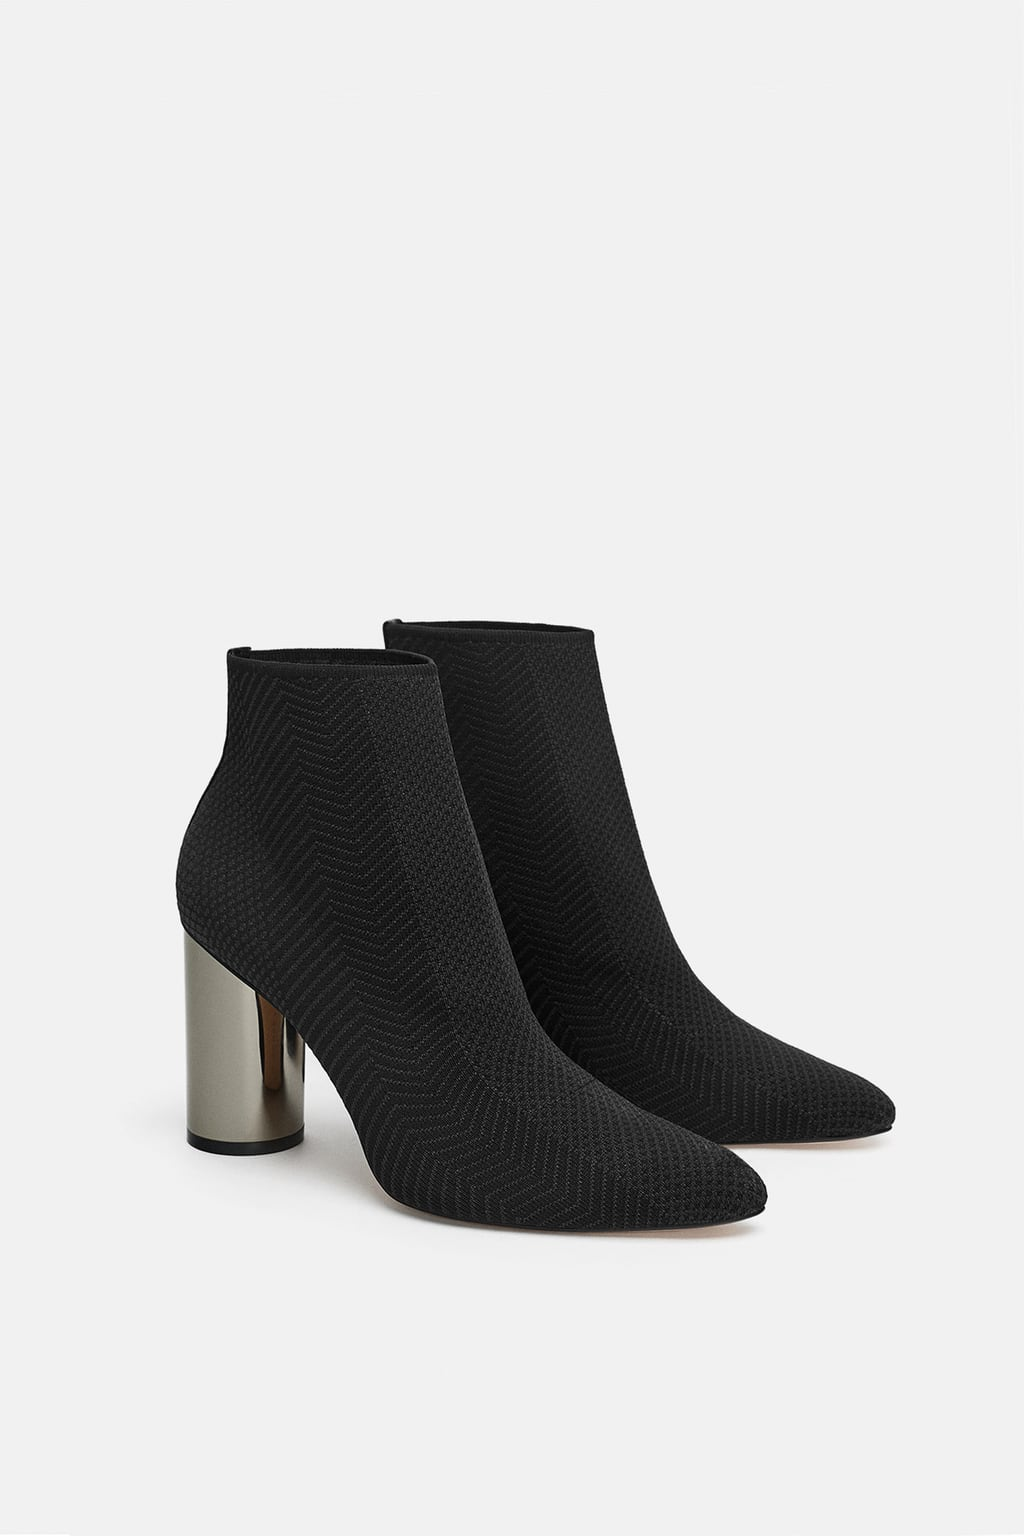 bfe7067750a Zara FABRIC ANKLE BOOT WITH METALLIC HEEL